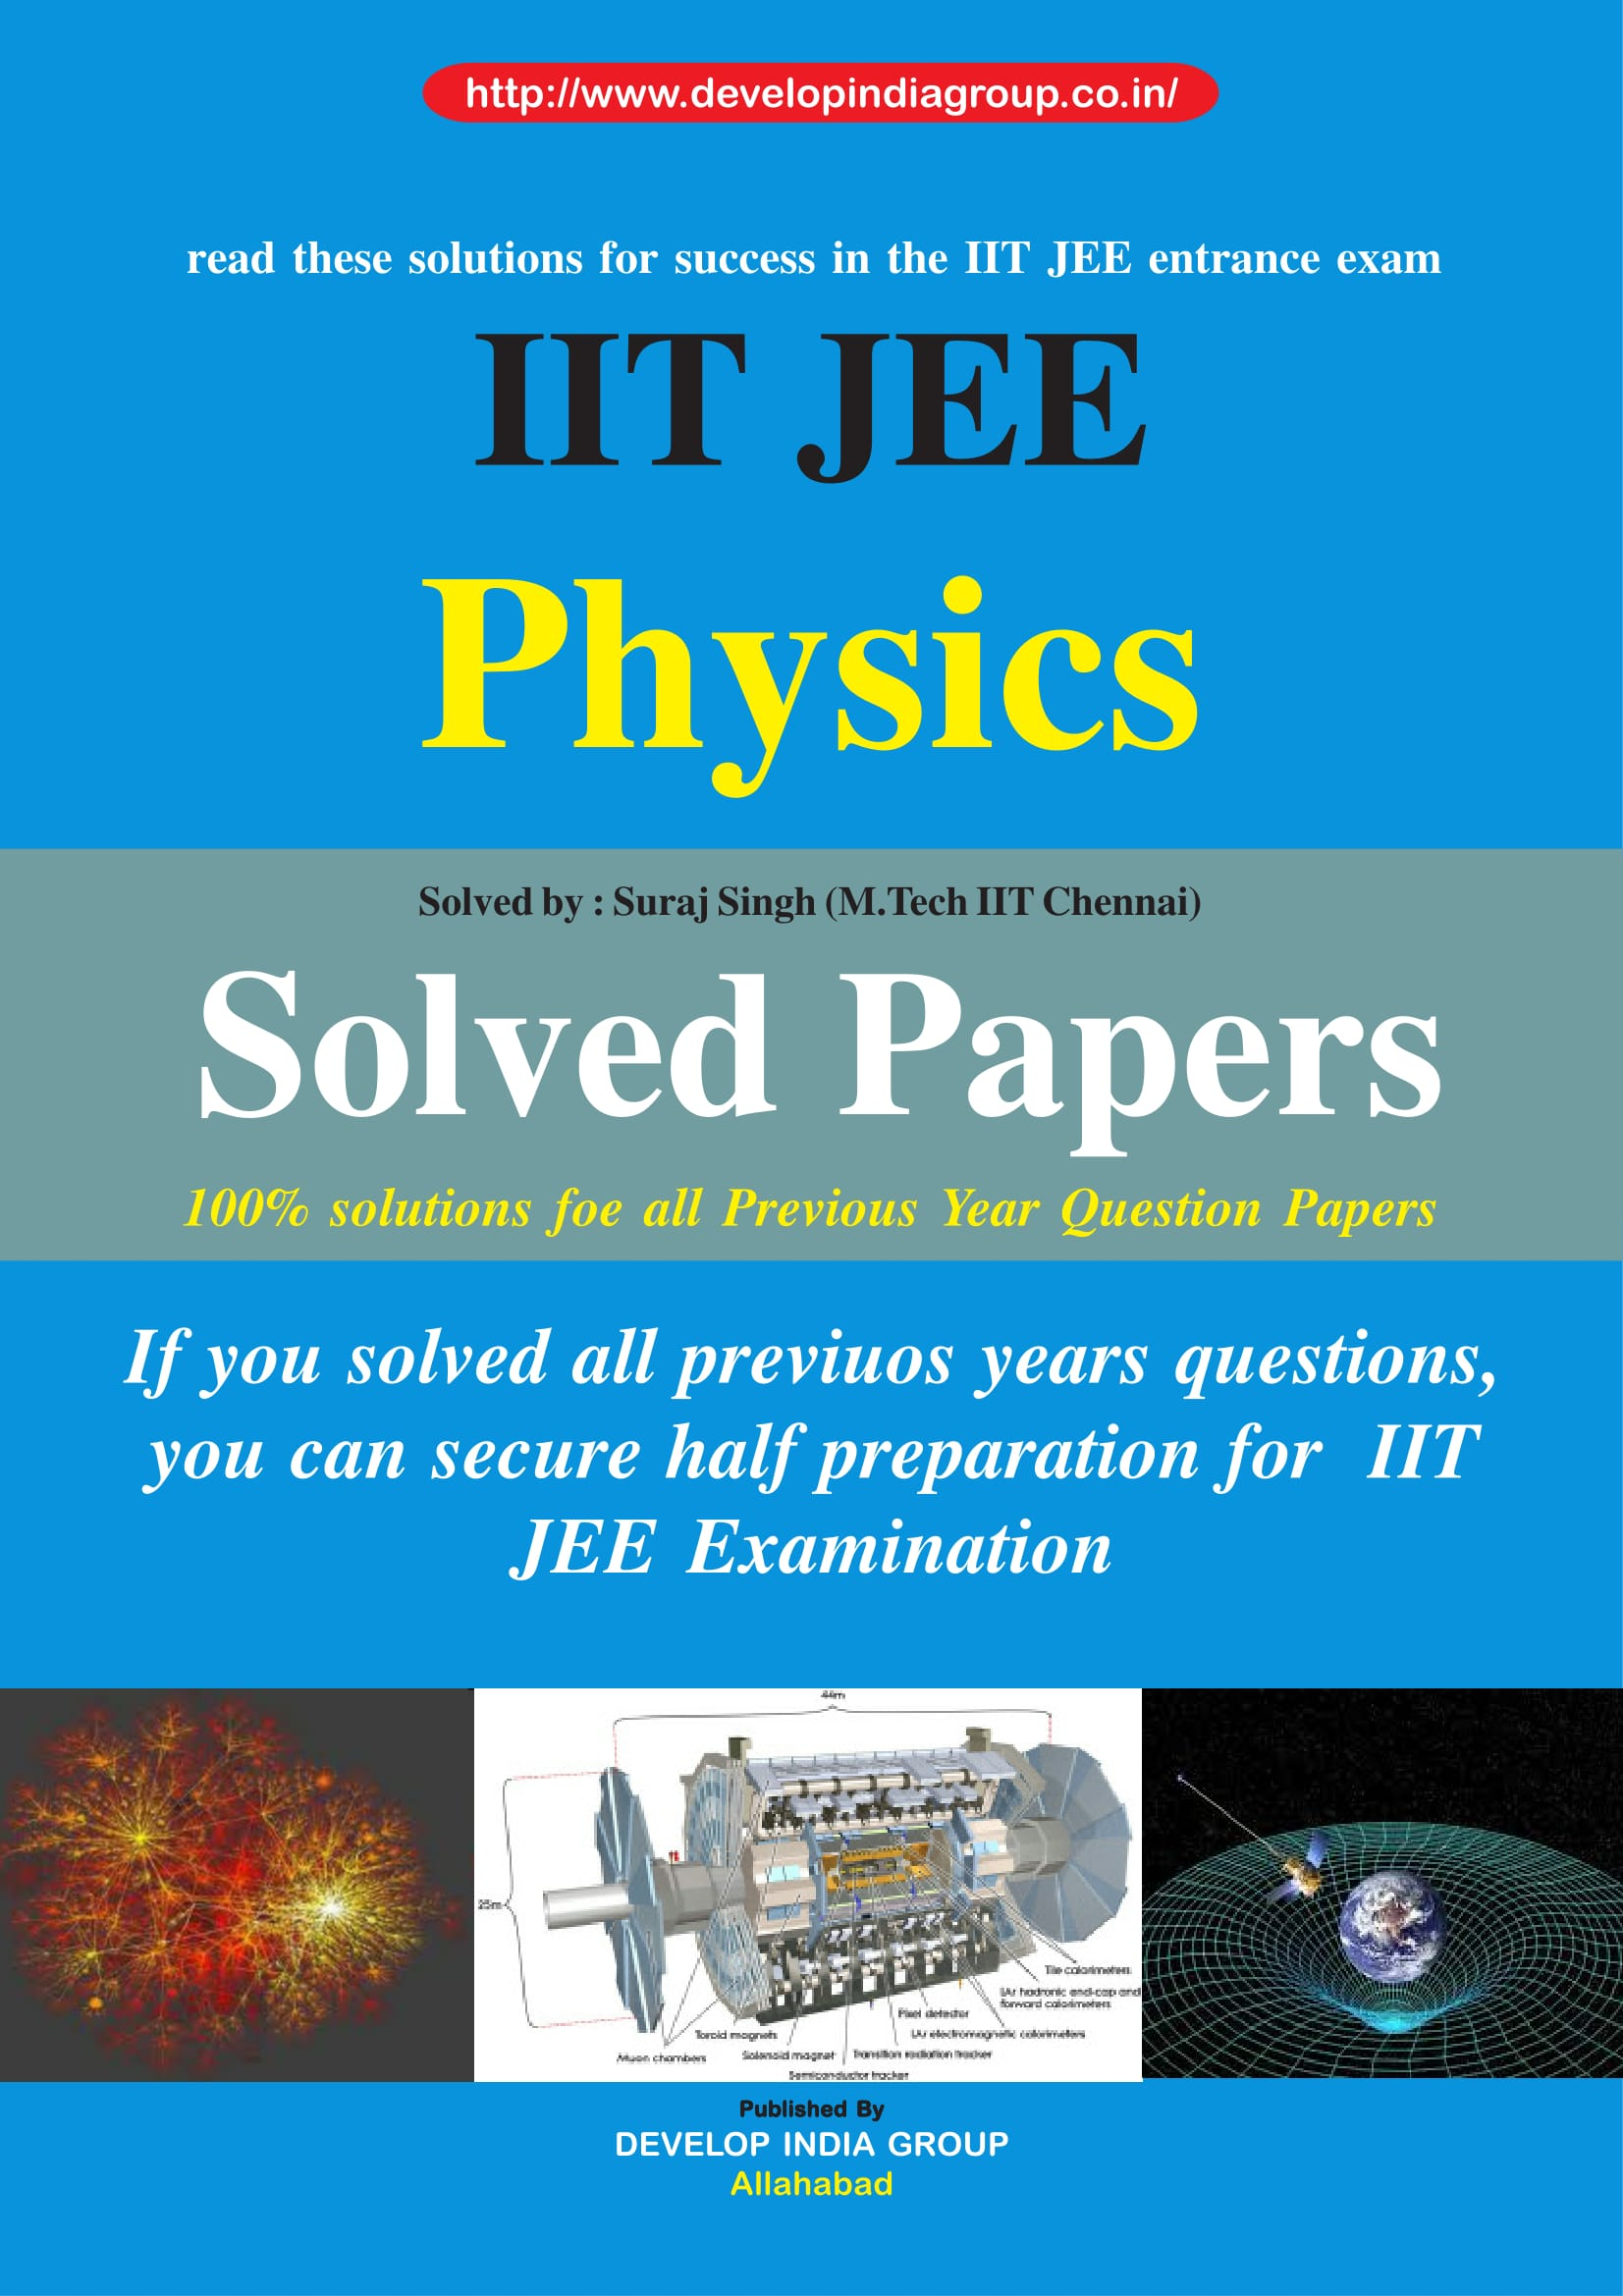 IIT_JEE_solved_paper_for_Physics